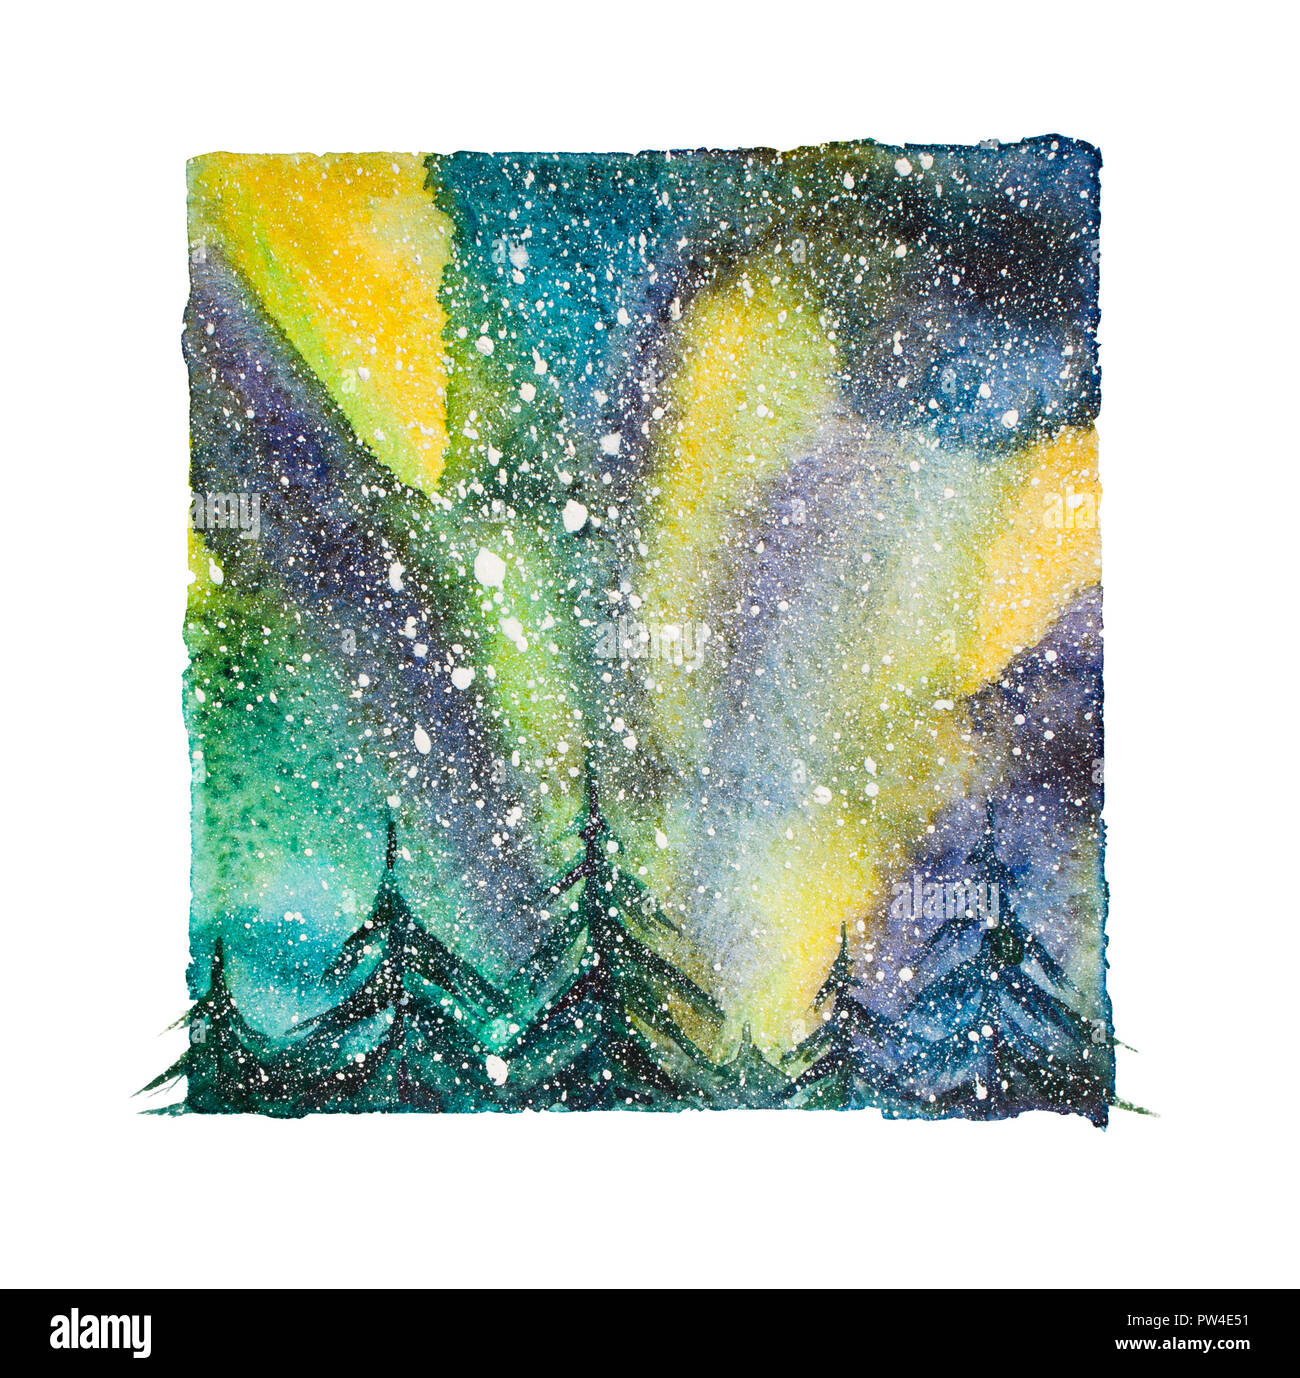 Watercolor northern lights, isolated north sky with snowflakes at night - Stock Image